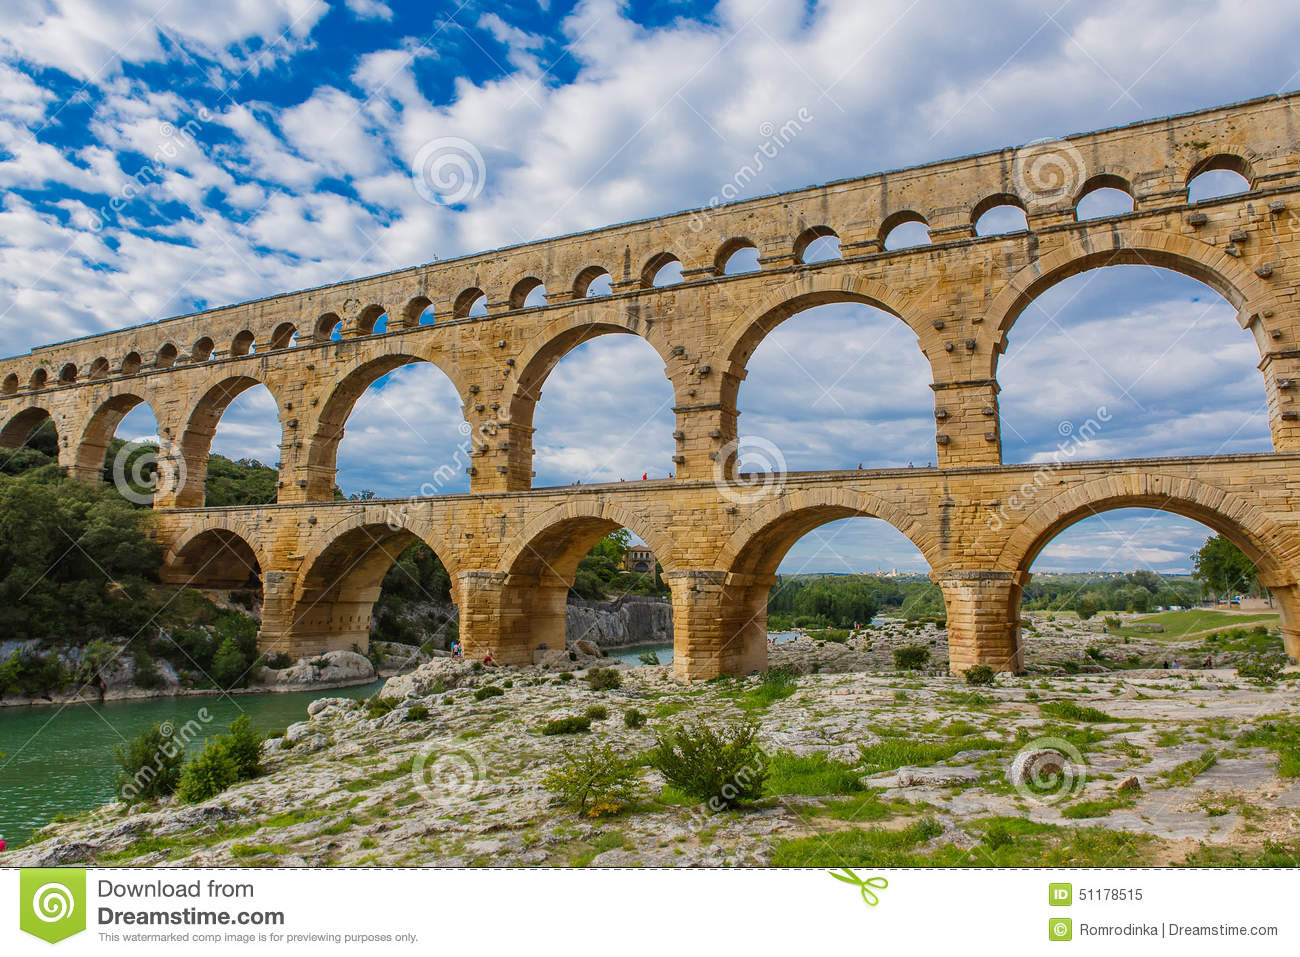 How Old Is The Aqueduct At Nimes 26